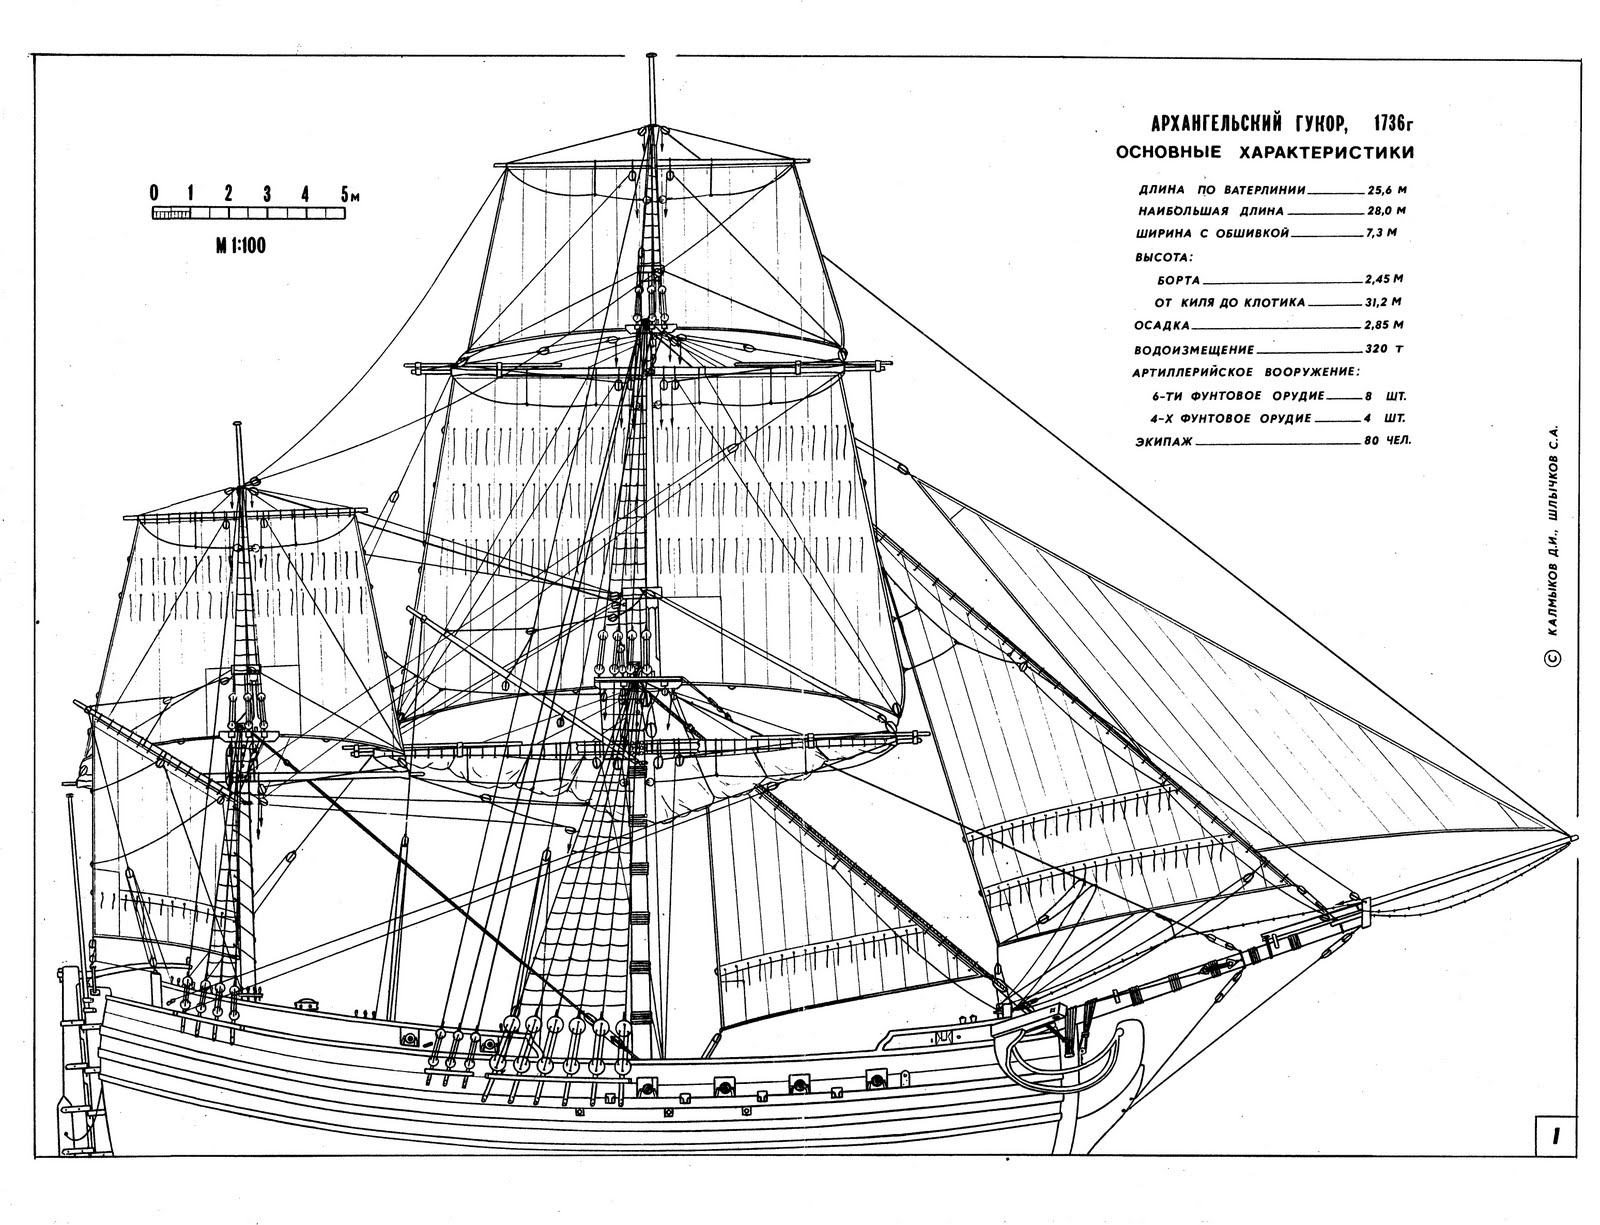 Woodwork free model boat plans wooden pdf plans for Building planning and drawing free pdf download